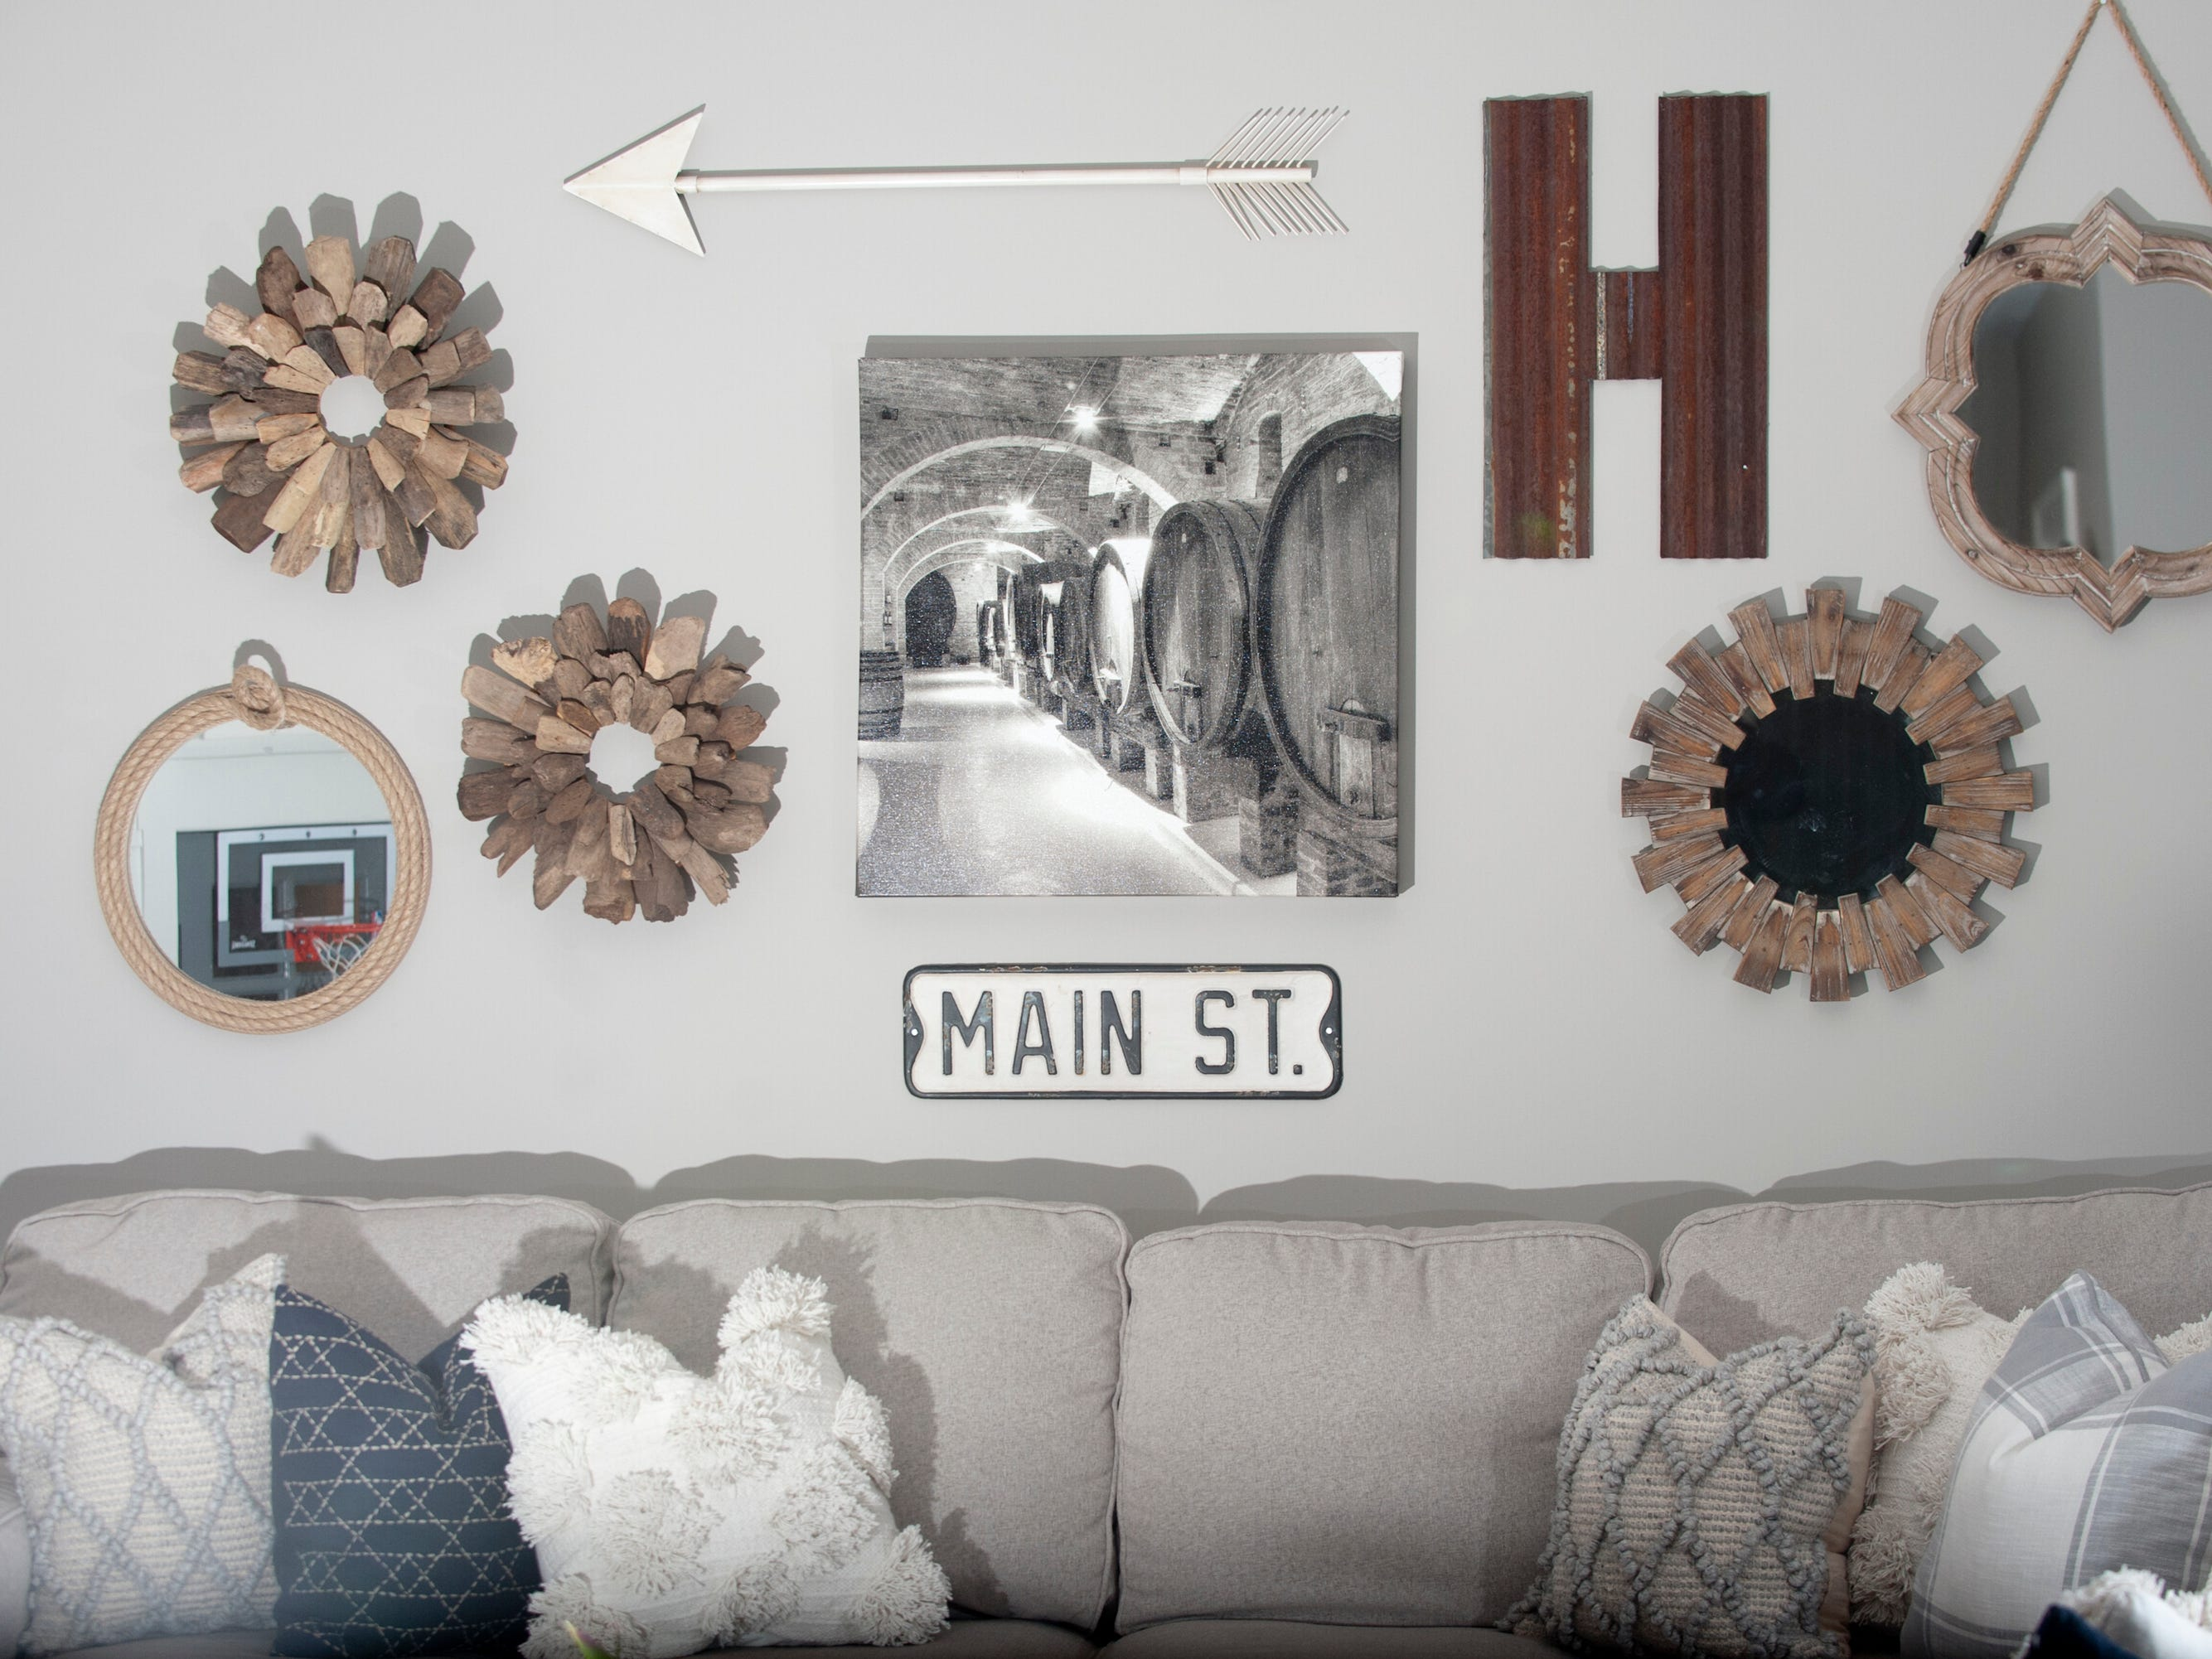 The Hannah basement family room wall includes a tin roof shingle shaped into an H (for Hannah,) a gift the Hannah' aunt Jenny. Karista Hannah chose the Main Street sign because it reminded her of biking up and down the street when she was growing up in her home town of Elizabeth, Illinois.01 March 2019